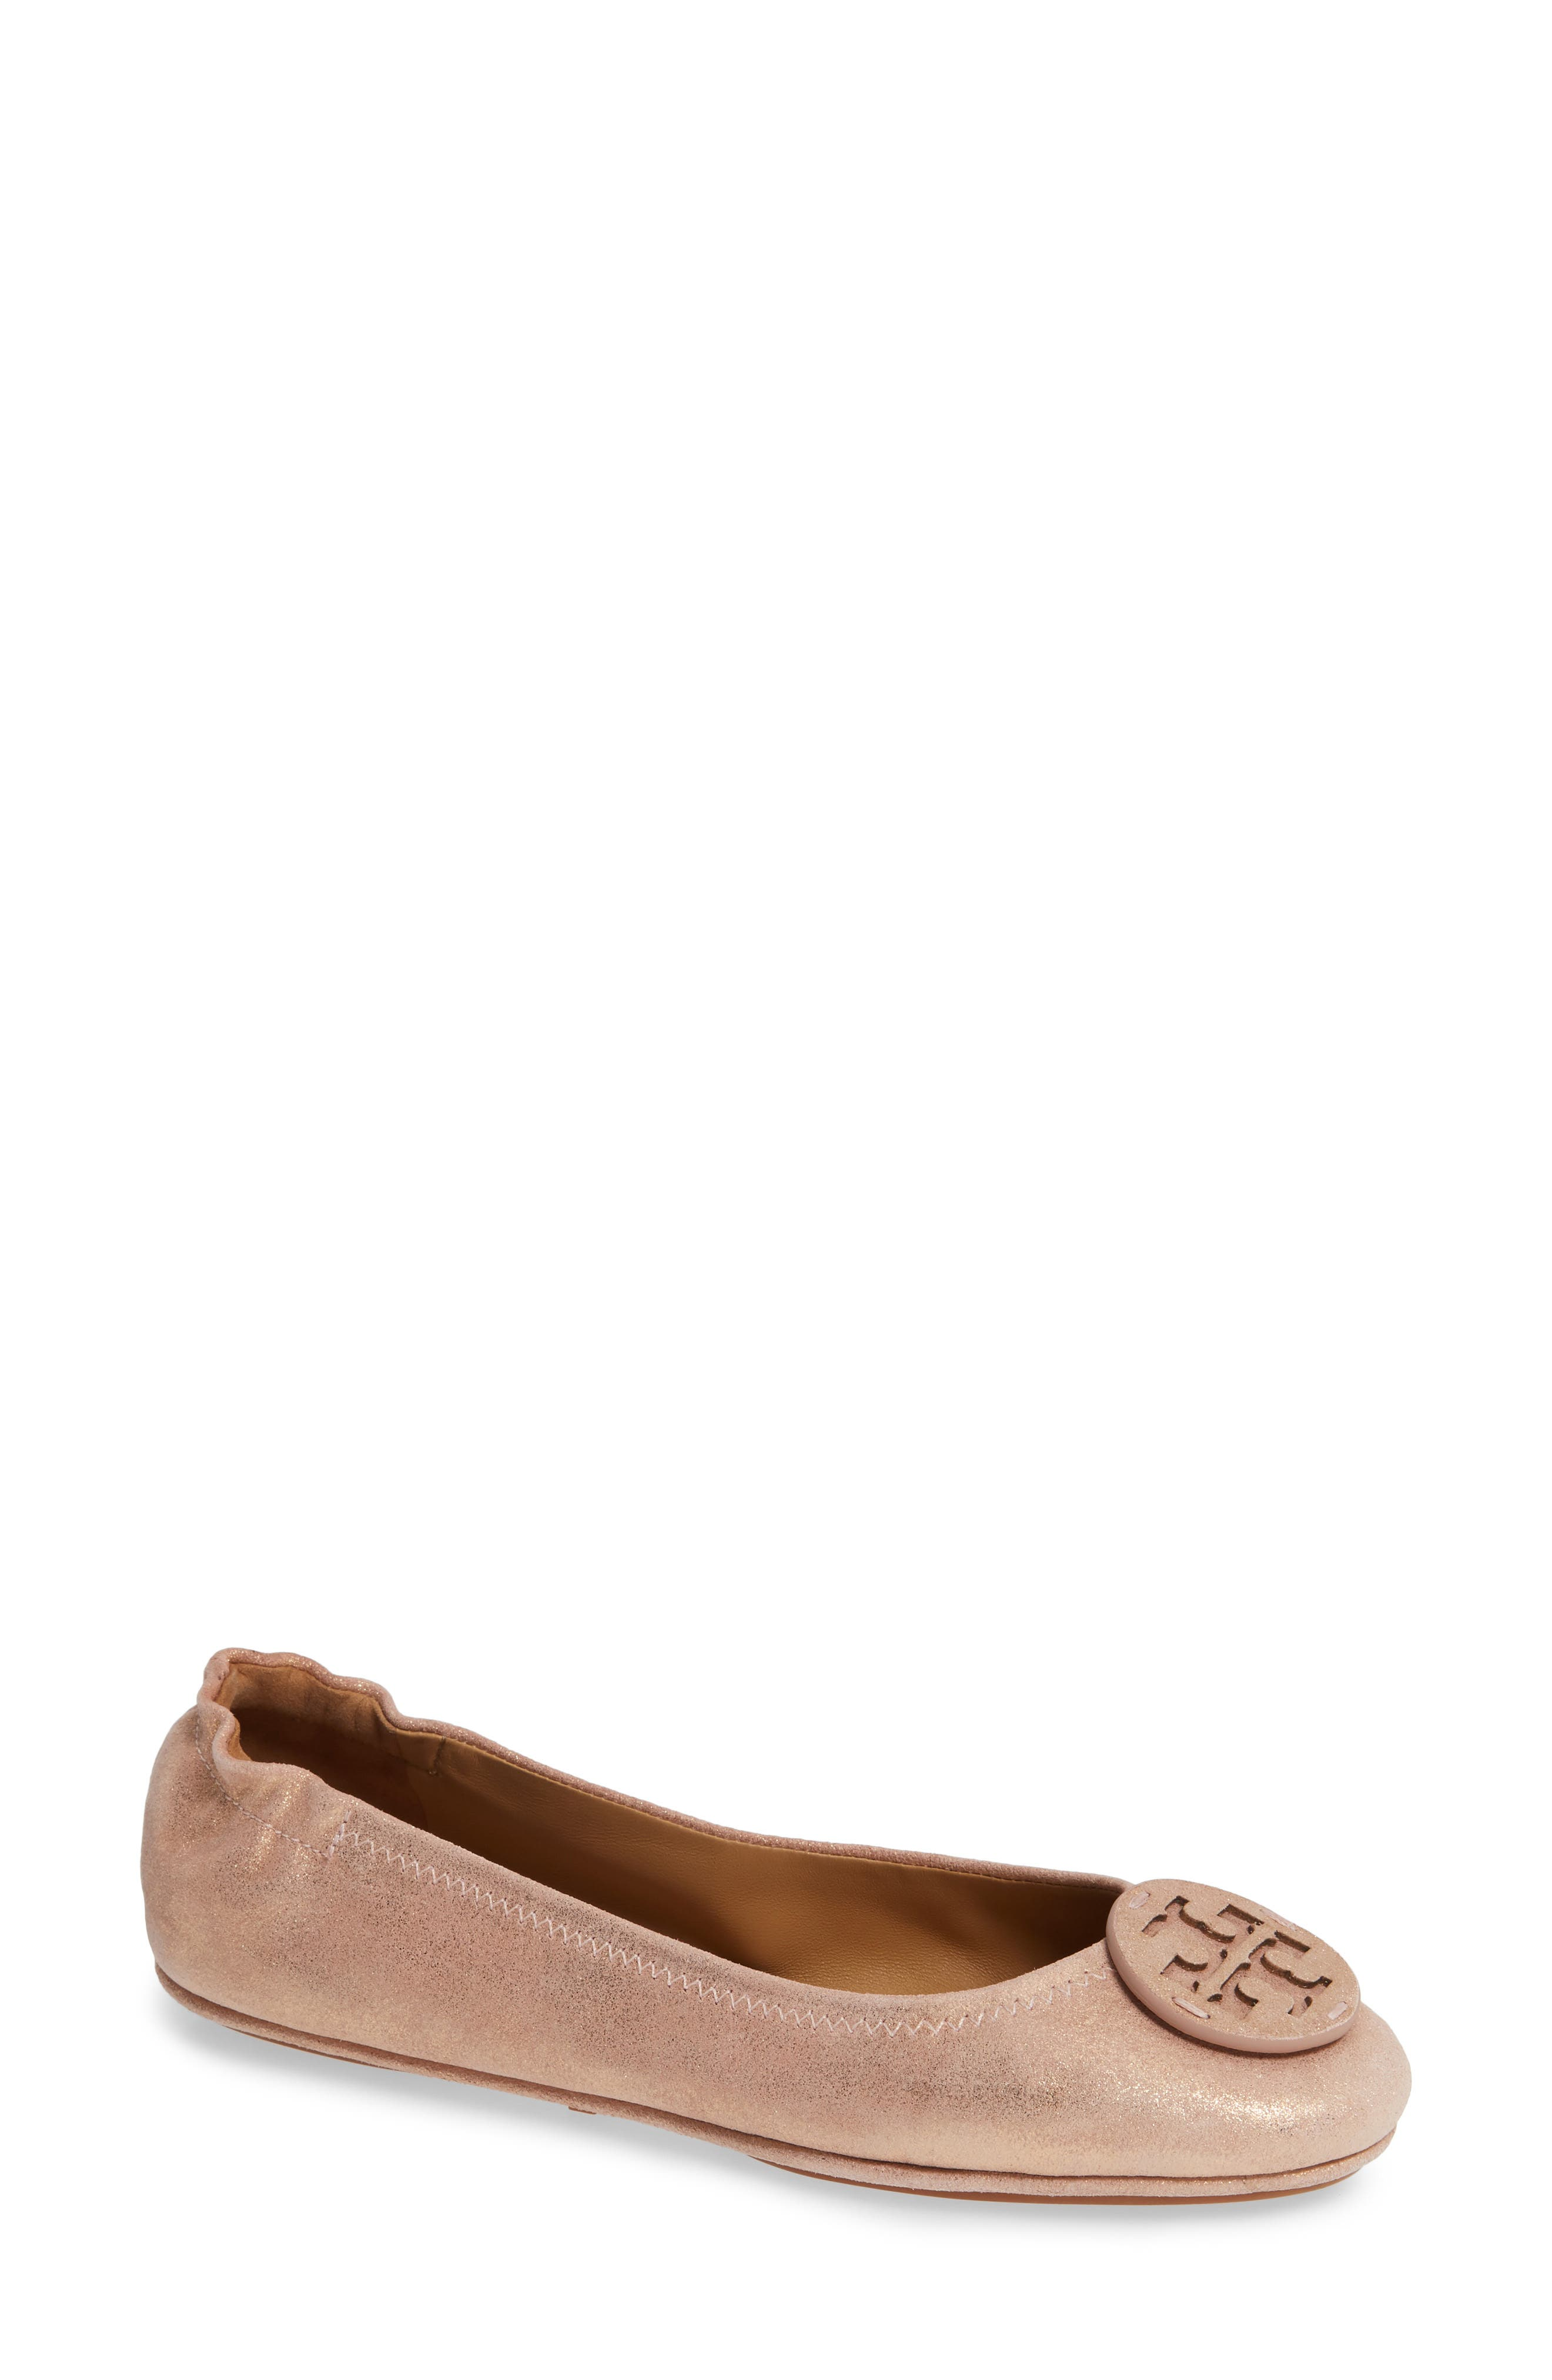 TORY BURCH Minnie Travel Ballet Flat, Main, color, 654